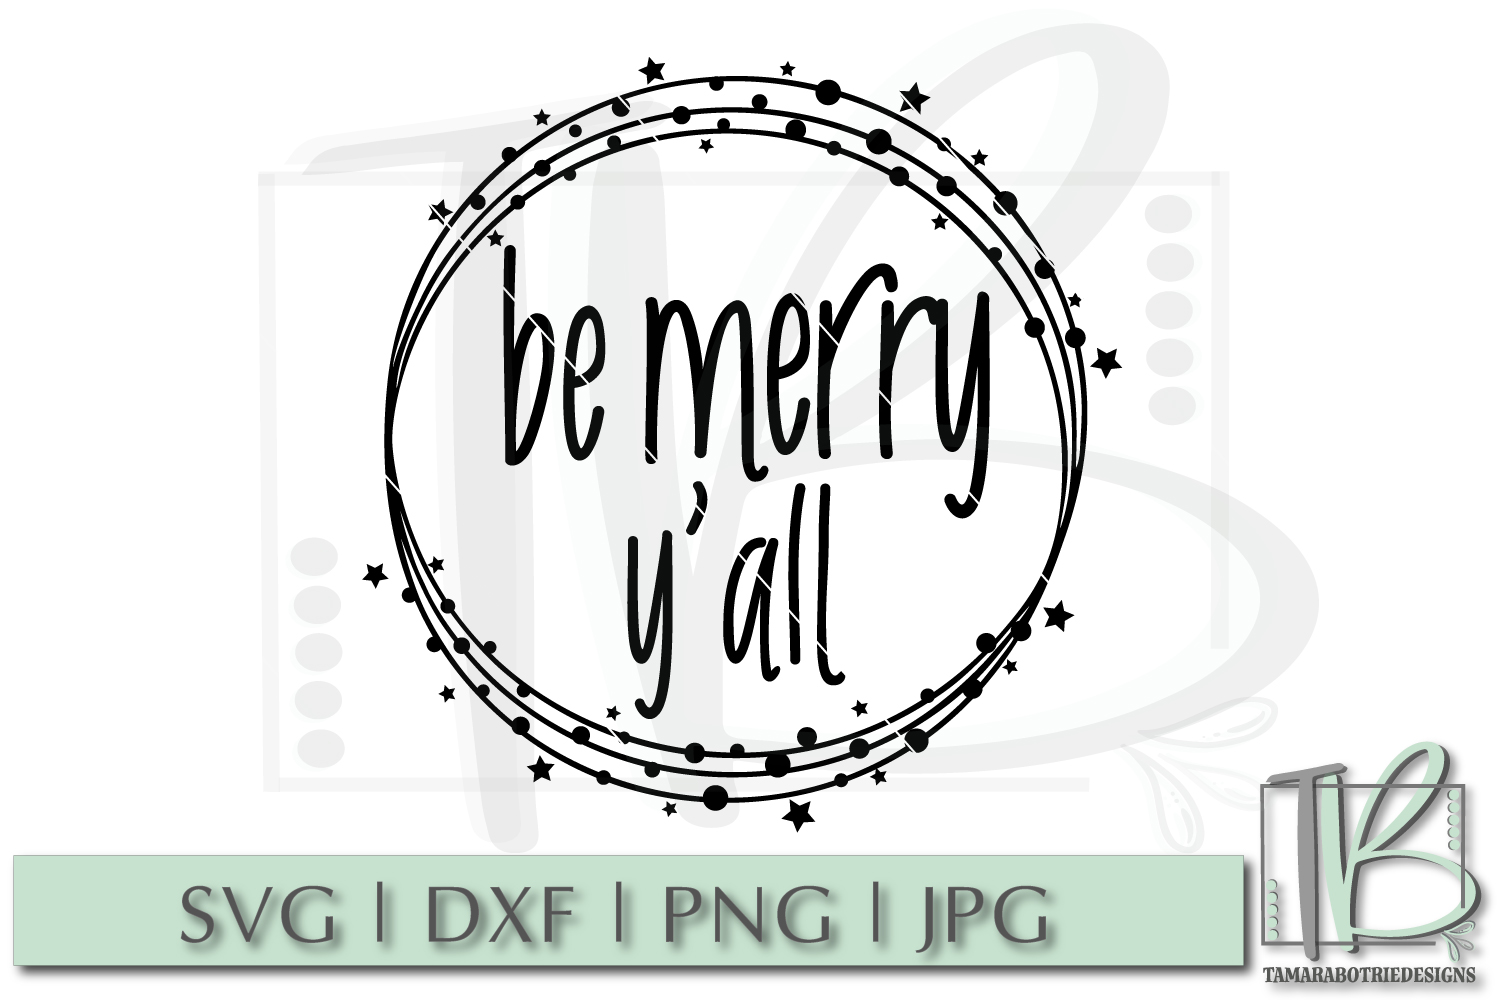 Be Merry Y'all SVG, Christmas Cut File example image 2